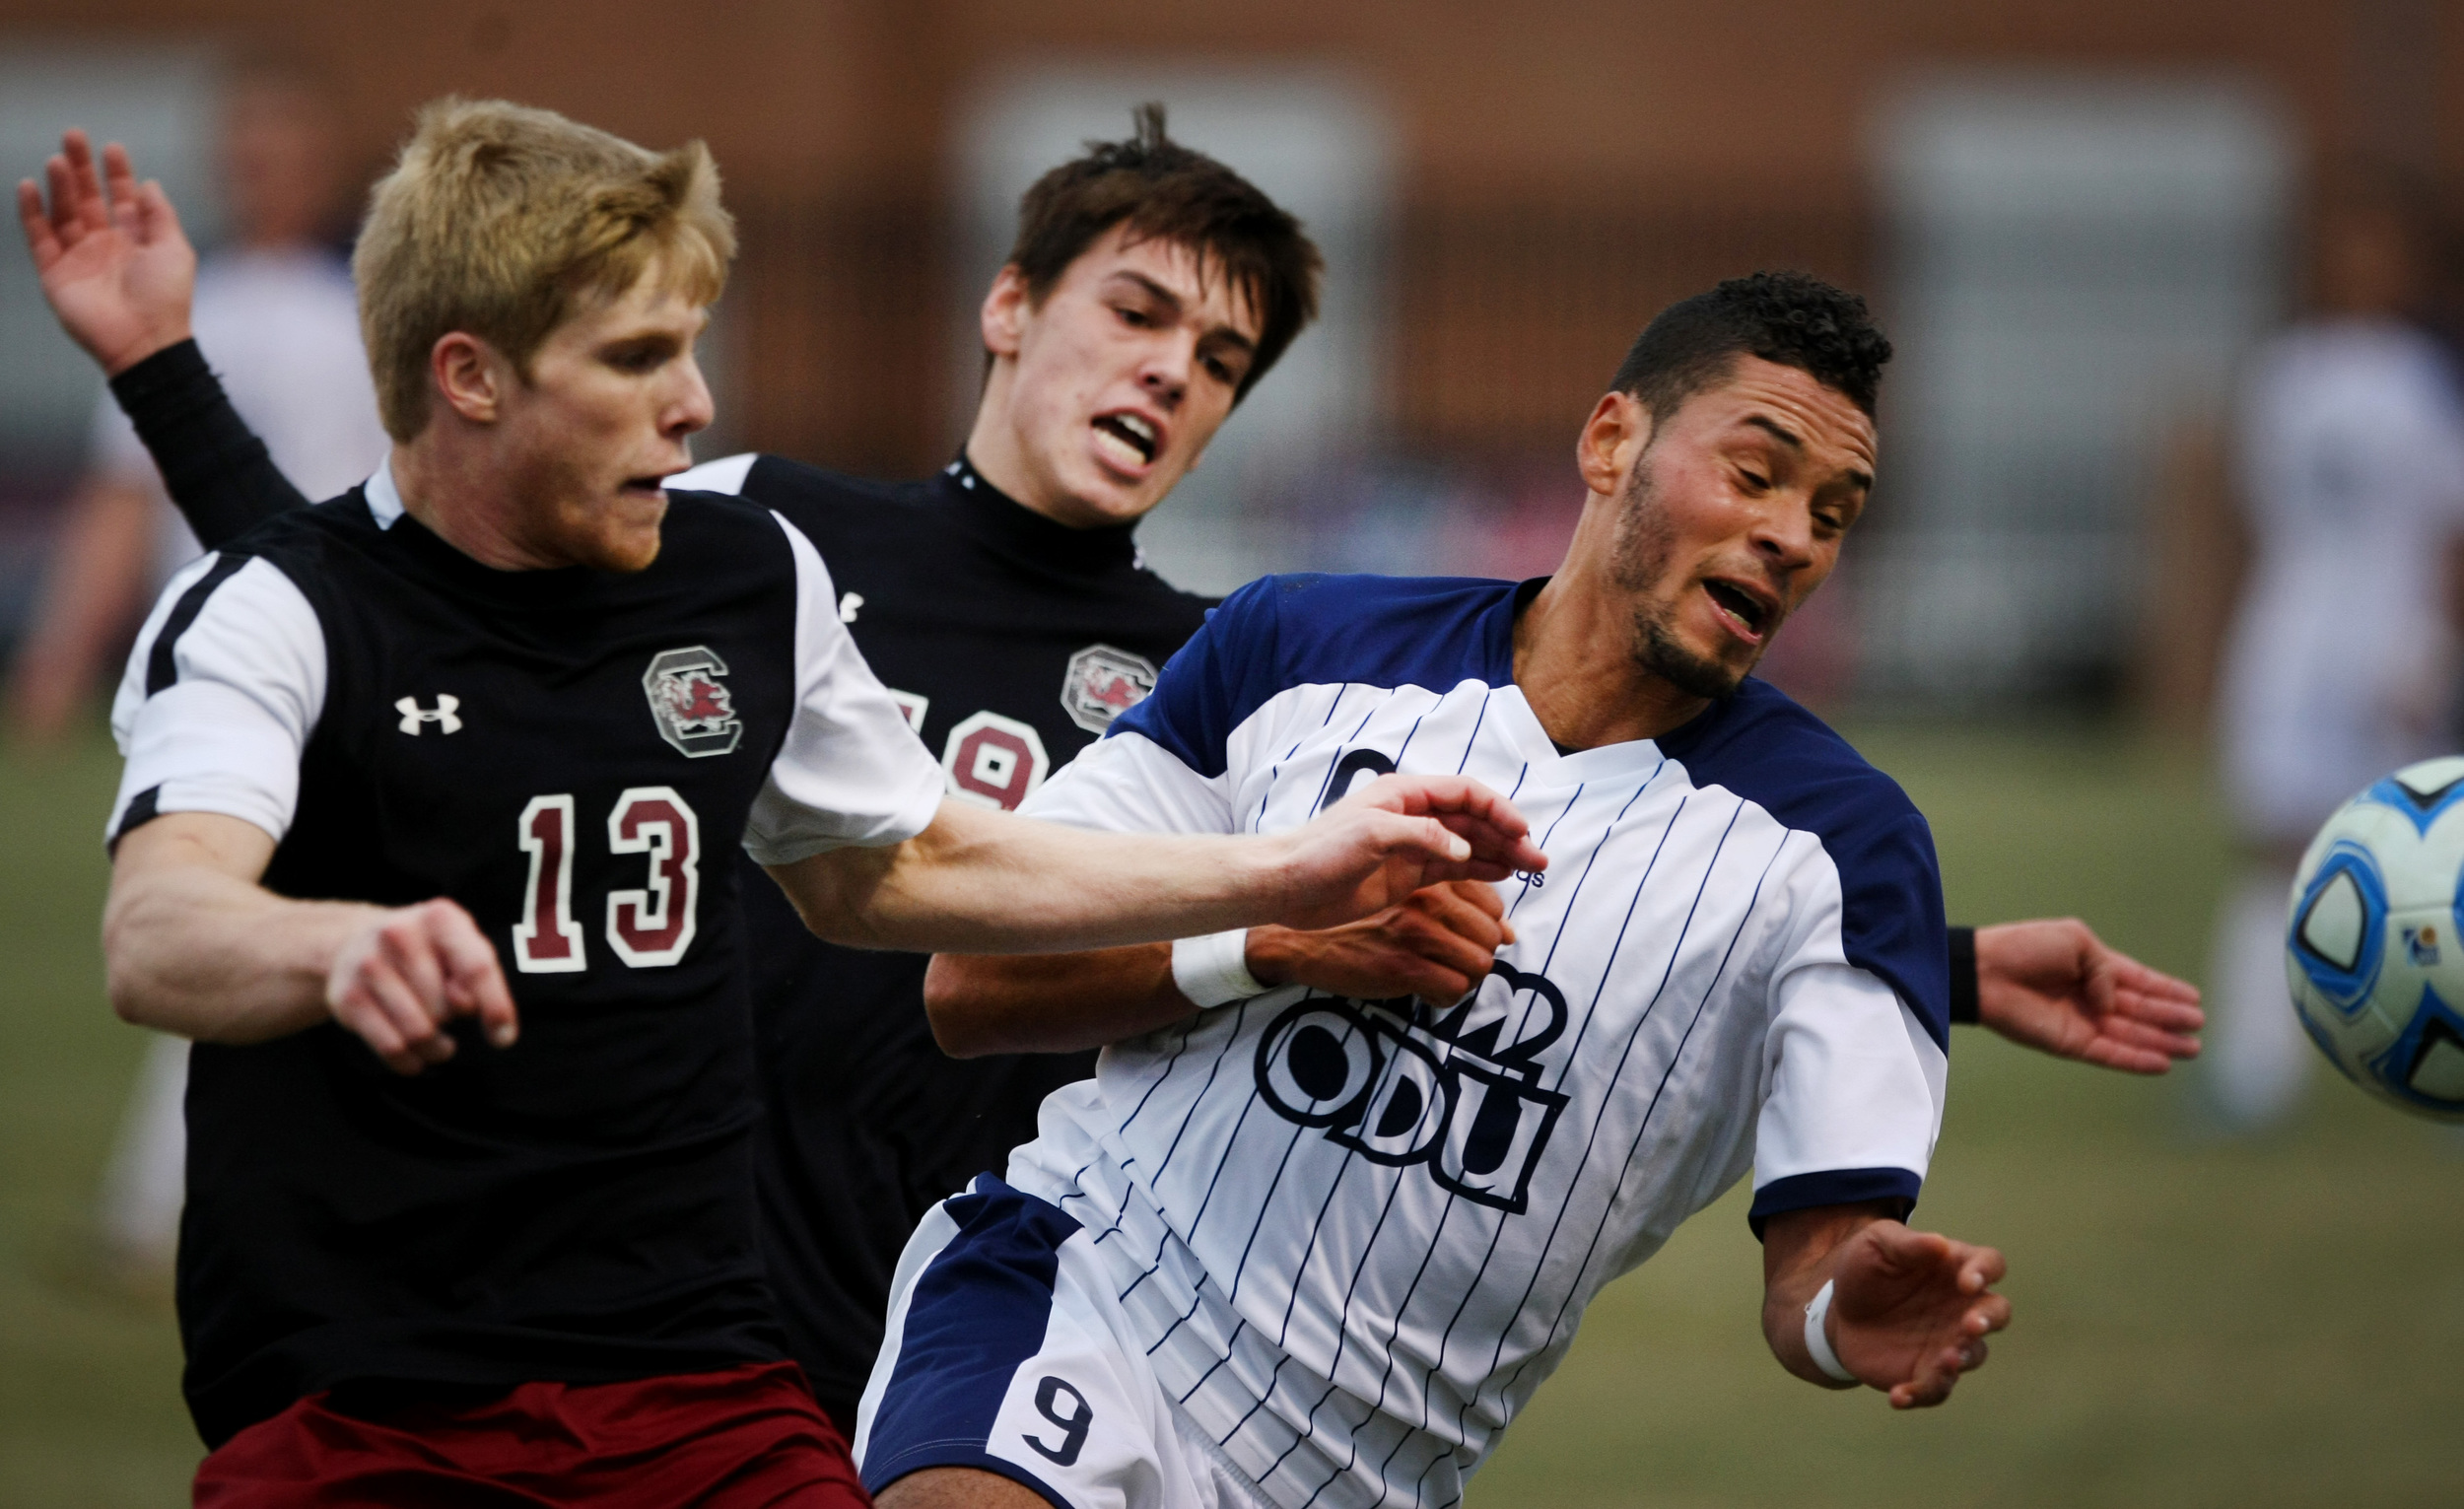 ODU's Sidney Rivera, right, battles a for a loose ball against University of South Carolina's Braeden Troyer in the second half of ODU's 2-1 win over University of South Carolina to claim the Conference USA Men's Soccer Final, Sunday, Nov. 16, 2014 at ODU in Norfolk.